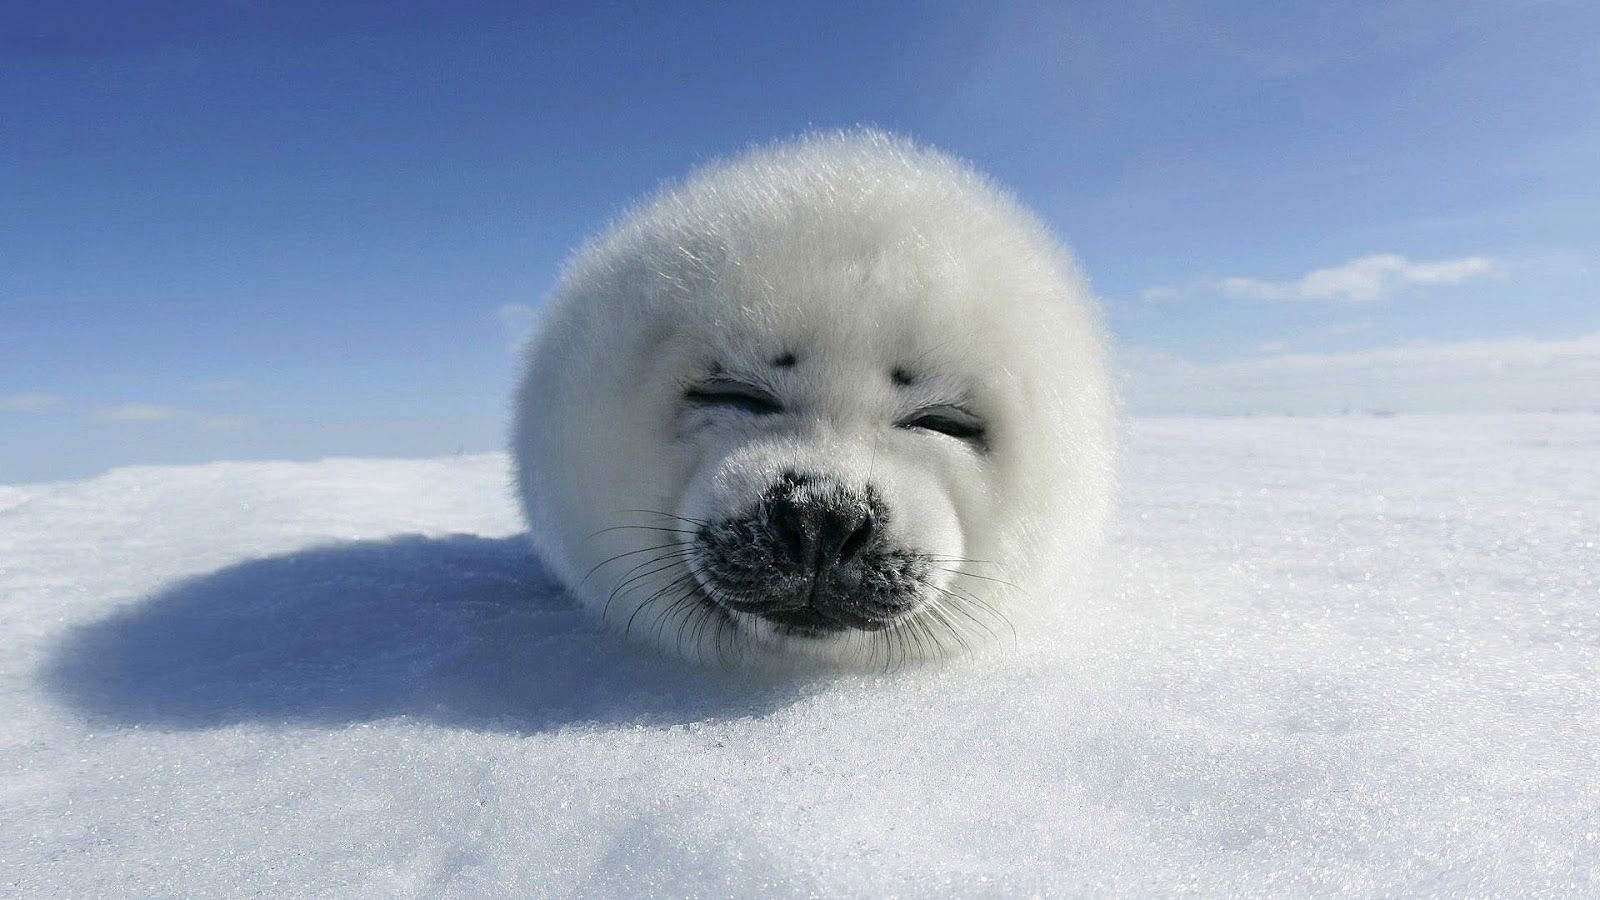 http://1.bp.blogspot.com/-9P-9RDH2QmA/UDe9ClmO0uI/AAAAAAAABBM/2uwTzjNsC6I/s1600/hd-baby-seal-wallpaper-with-a-baby-seal-resting-on-the-snow-hd-seals-wallpapers-backgrounds-pictures-photos.jpg